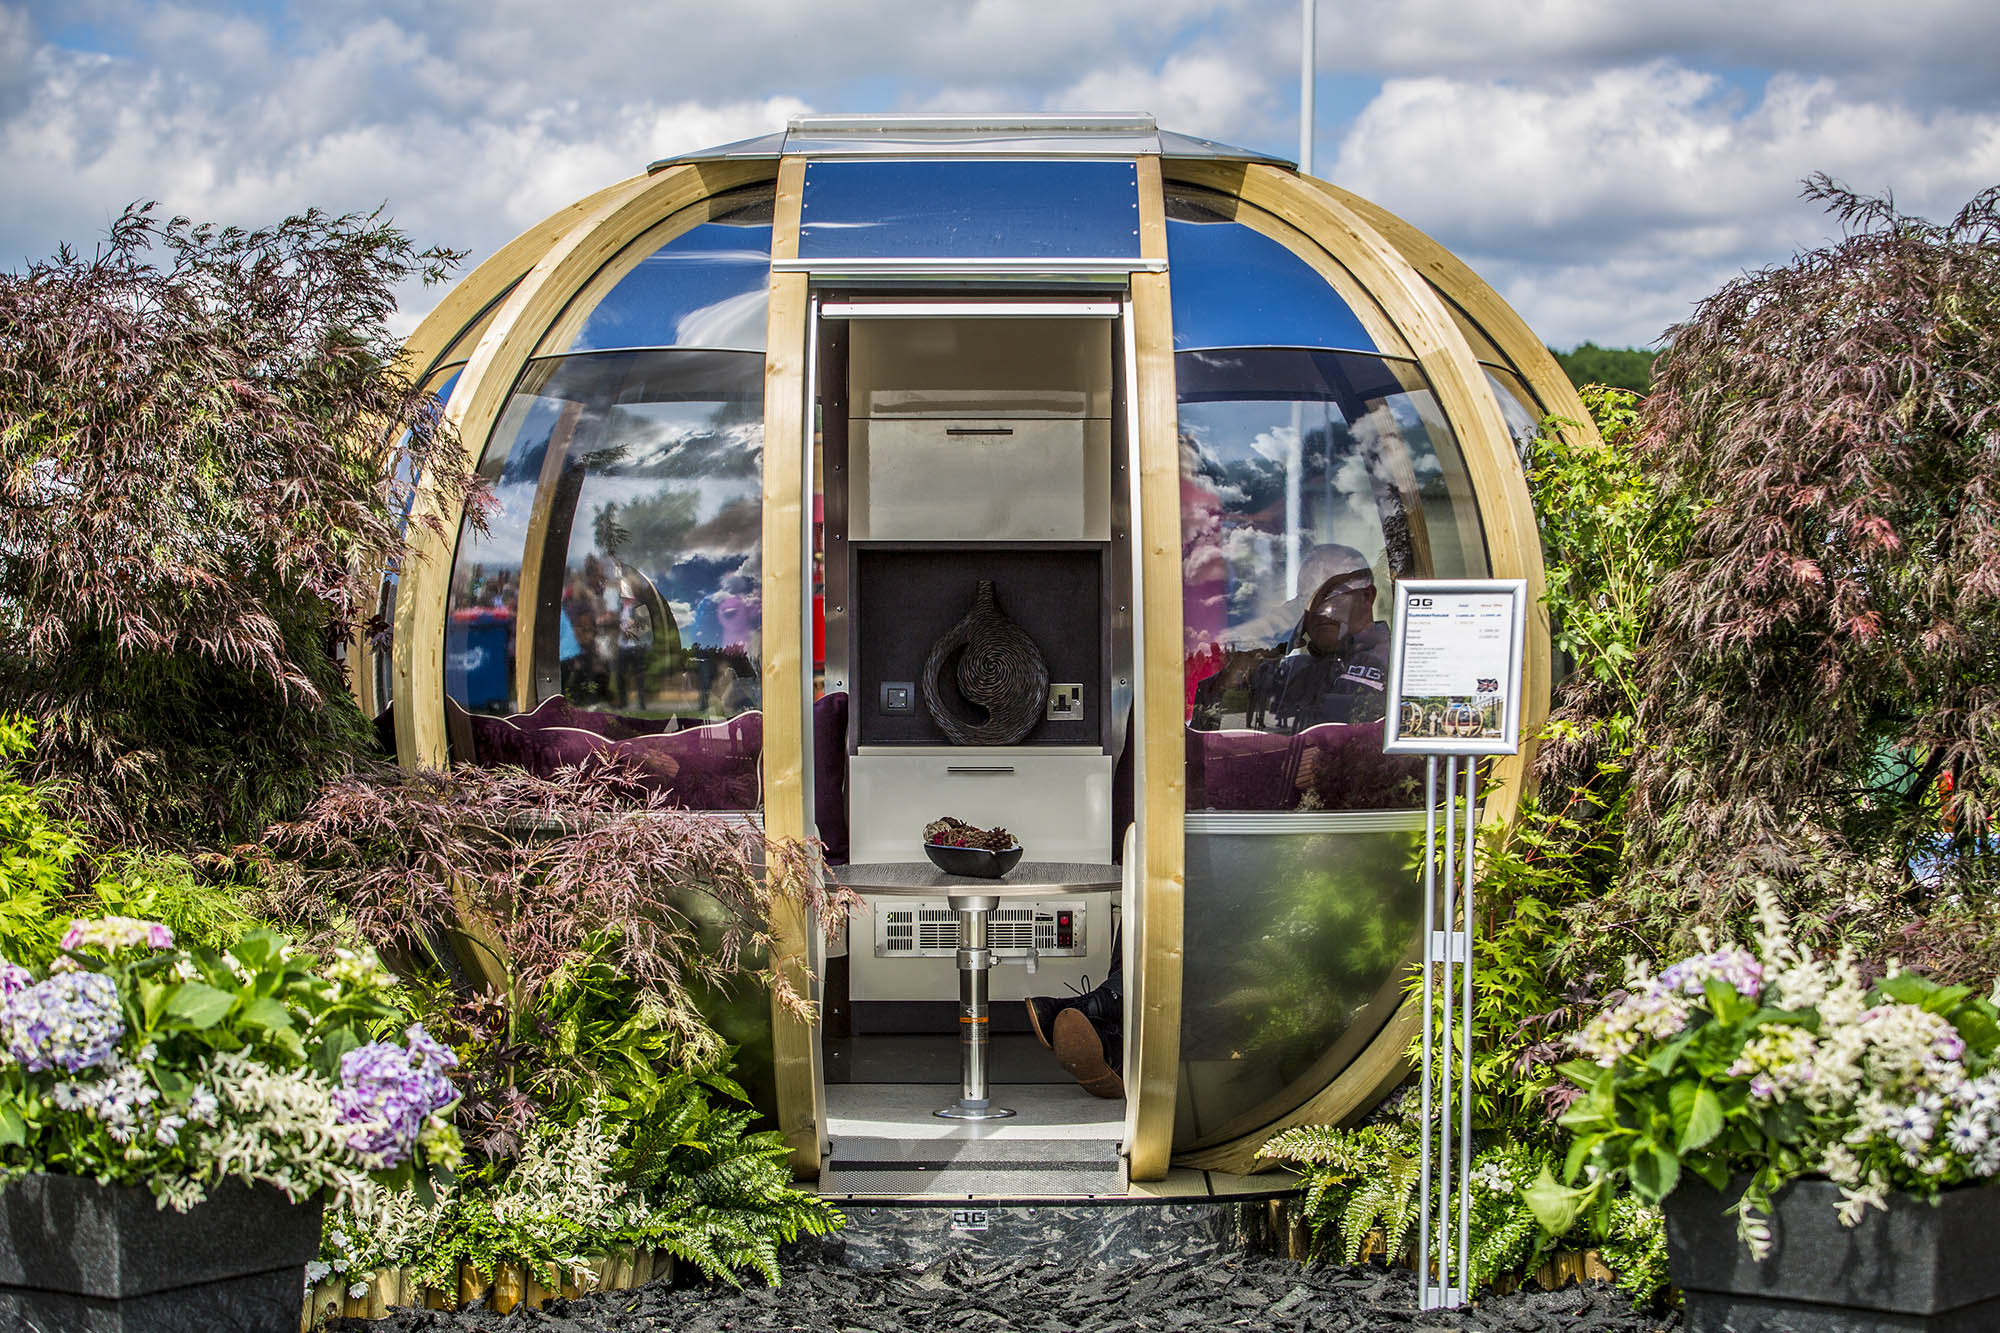 2017 RHS Chatsworth Flower Show